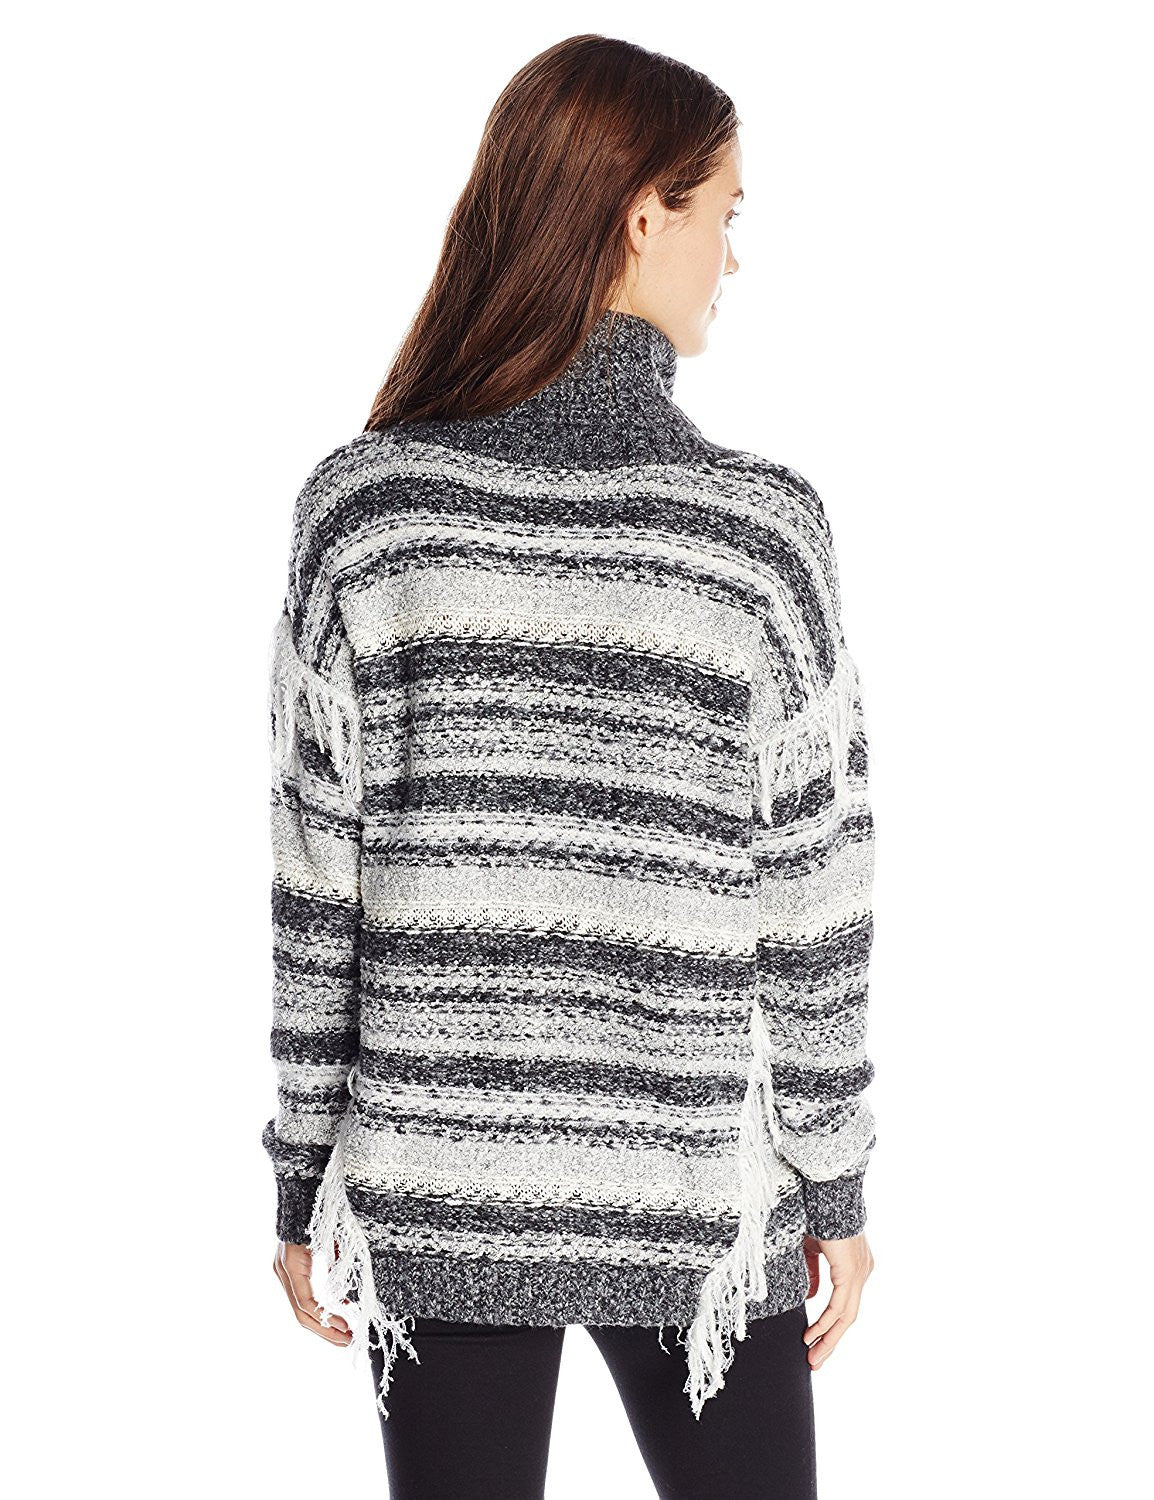 Kensie Cozy Multi-Yarn Sweater Gray Combo